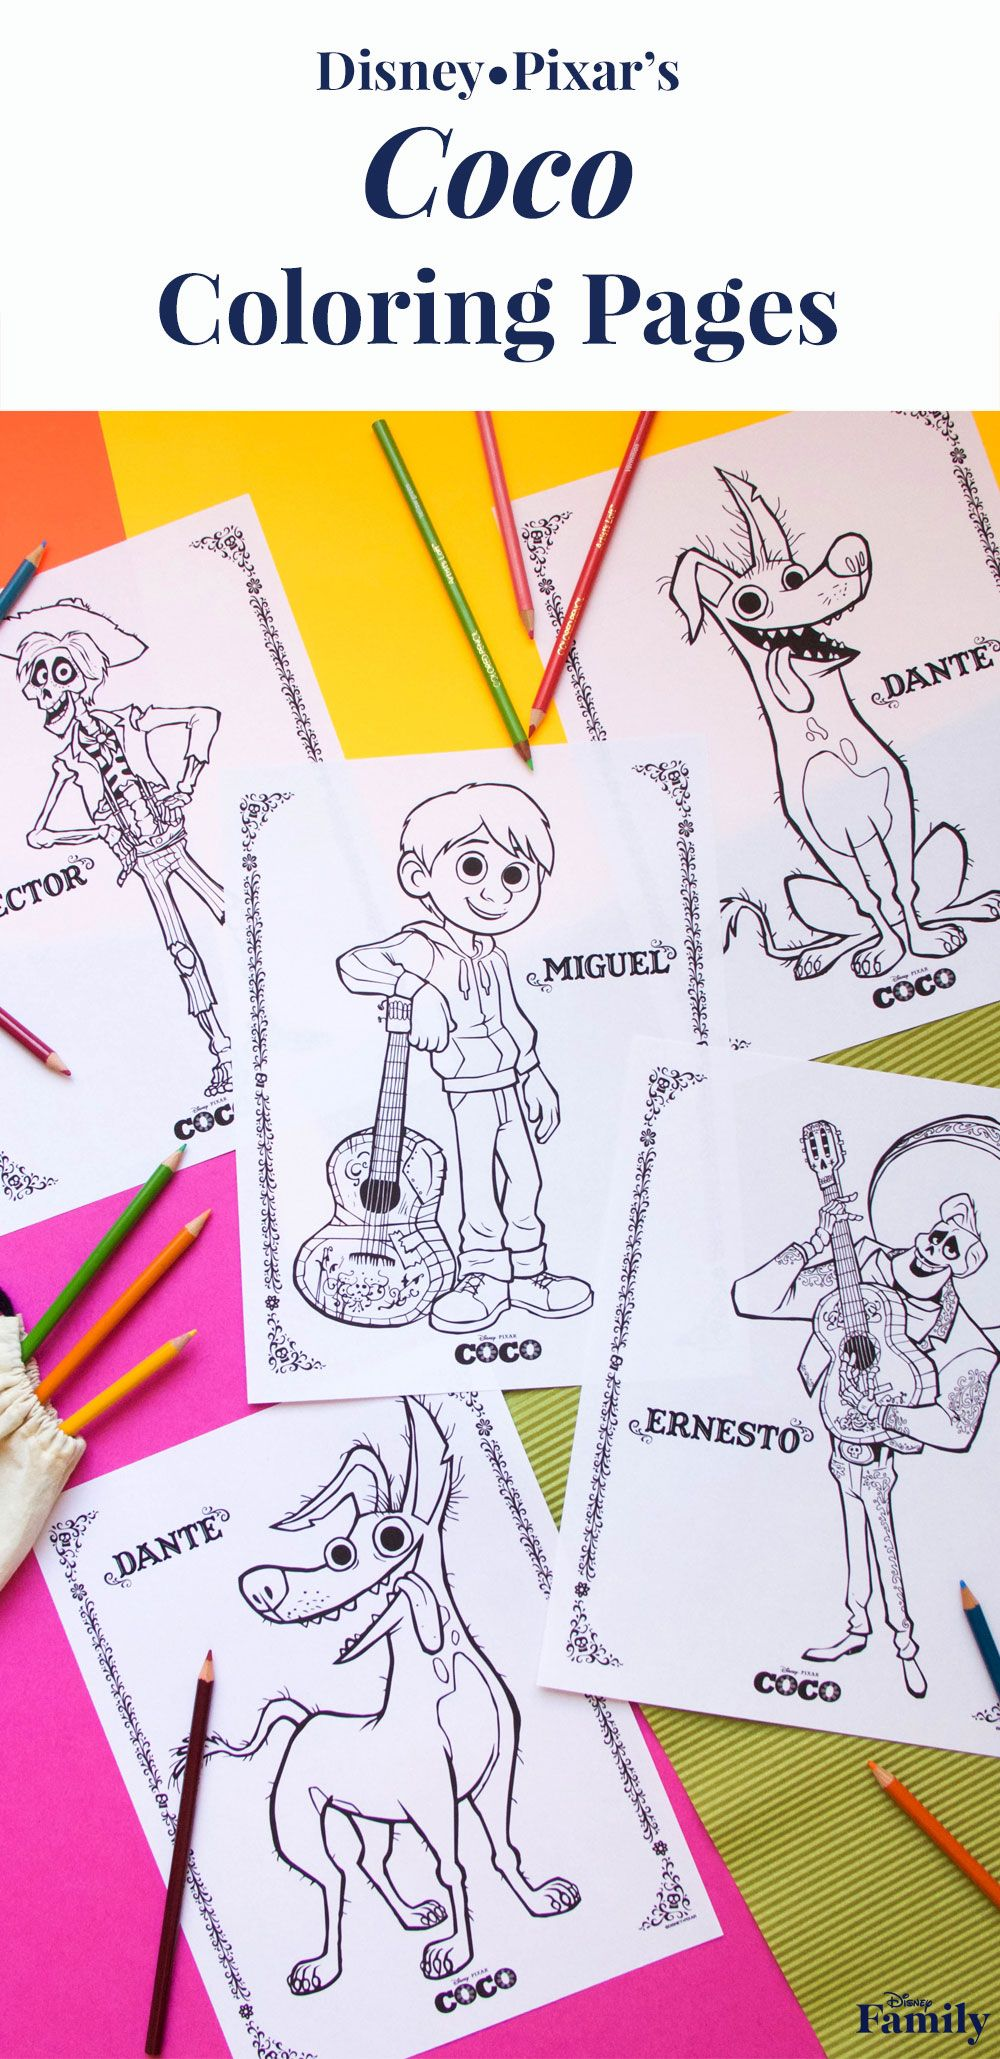 Get to know the characters with these ucocou coloring pages